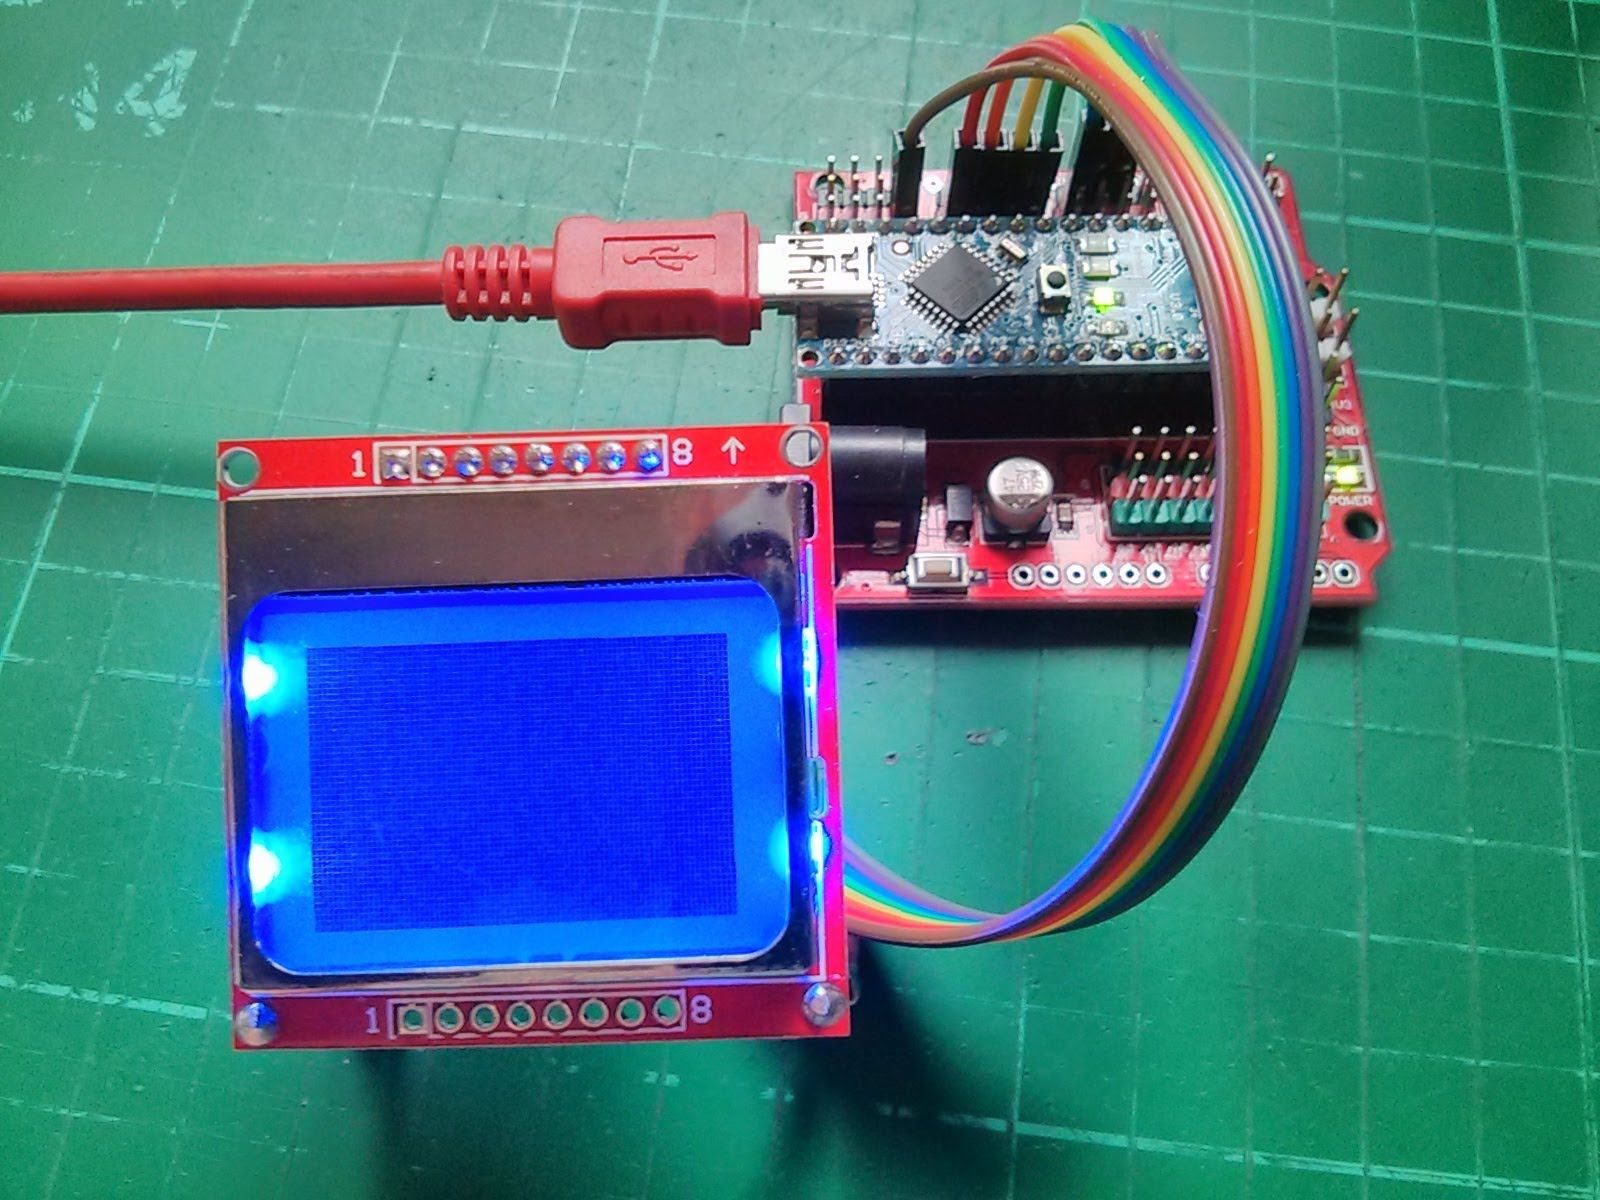 Arduino Nokia 5110 LCD Tutorial #1 - Connecting and Initial ...